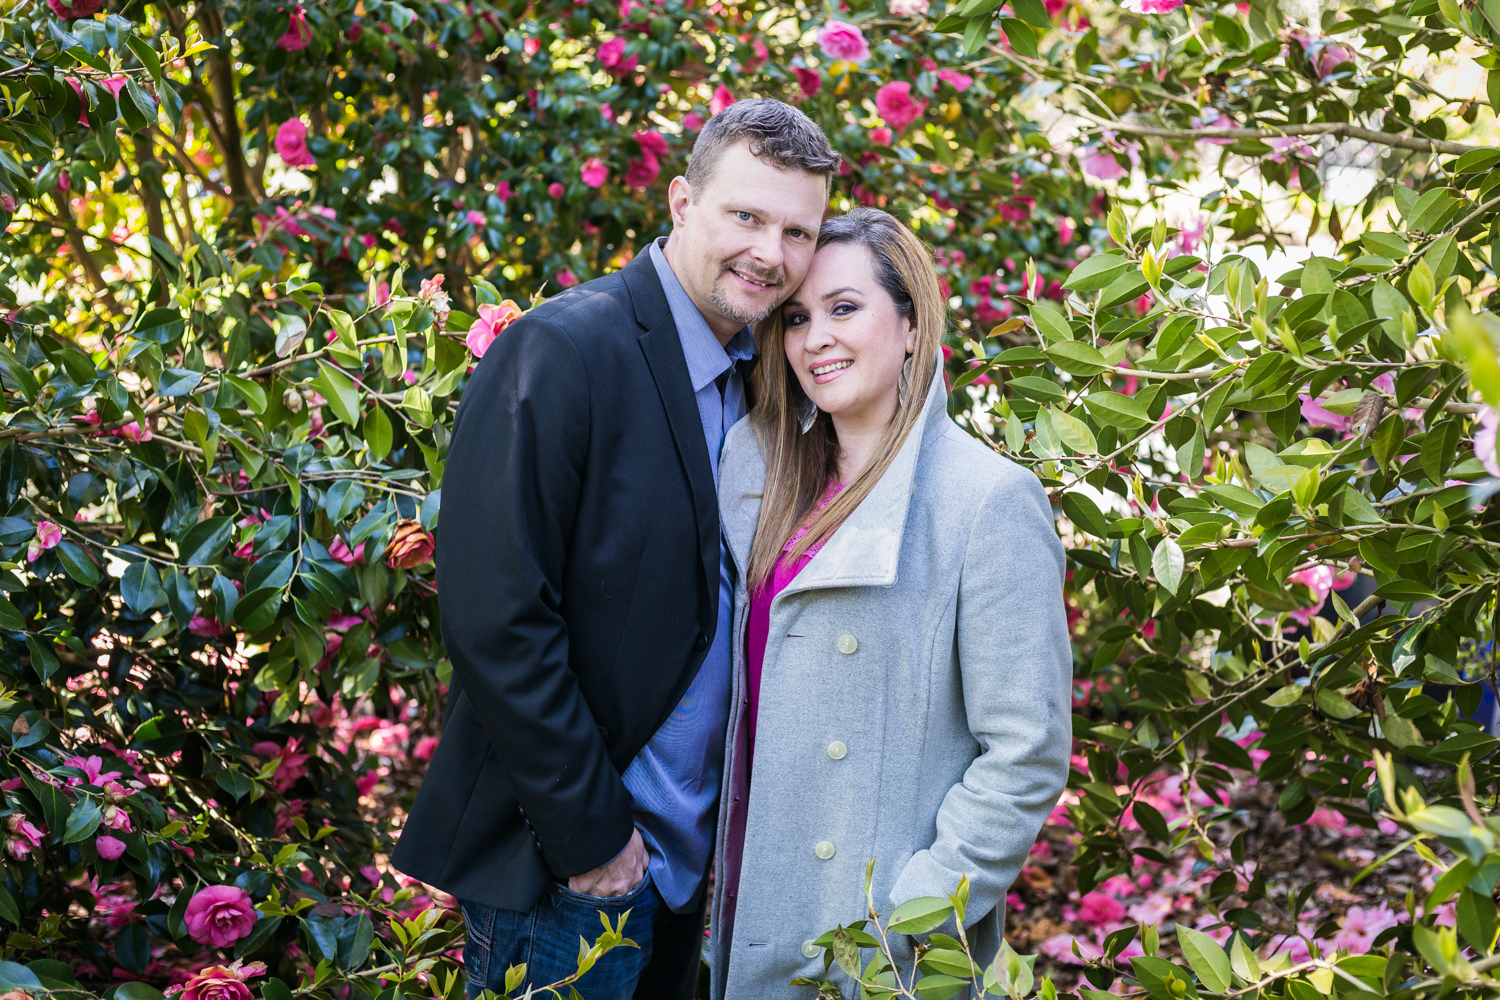 van dusen engagement (4 of 8)